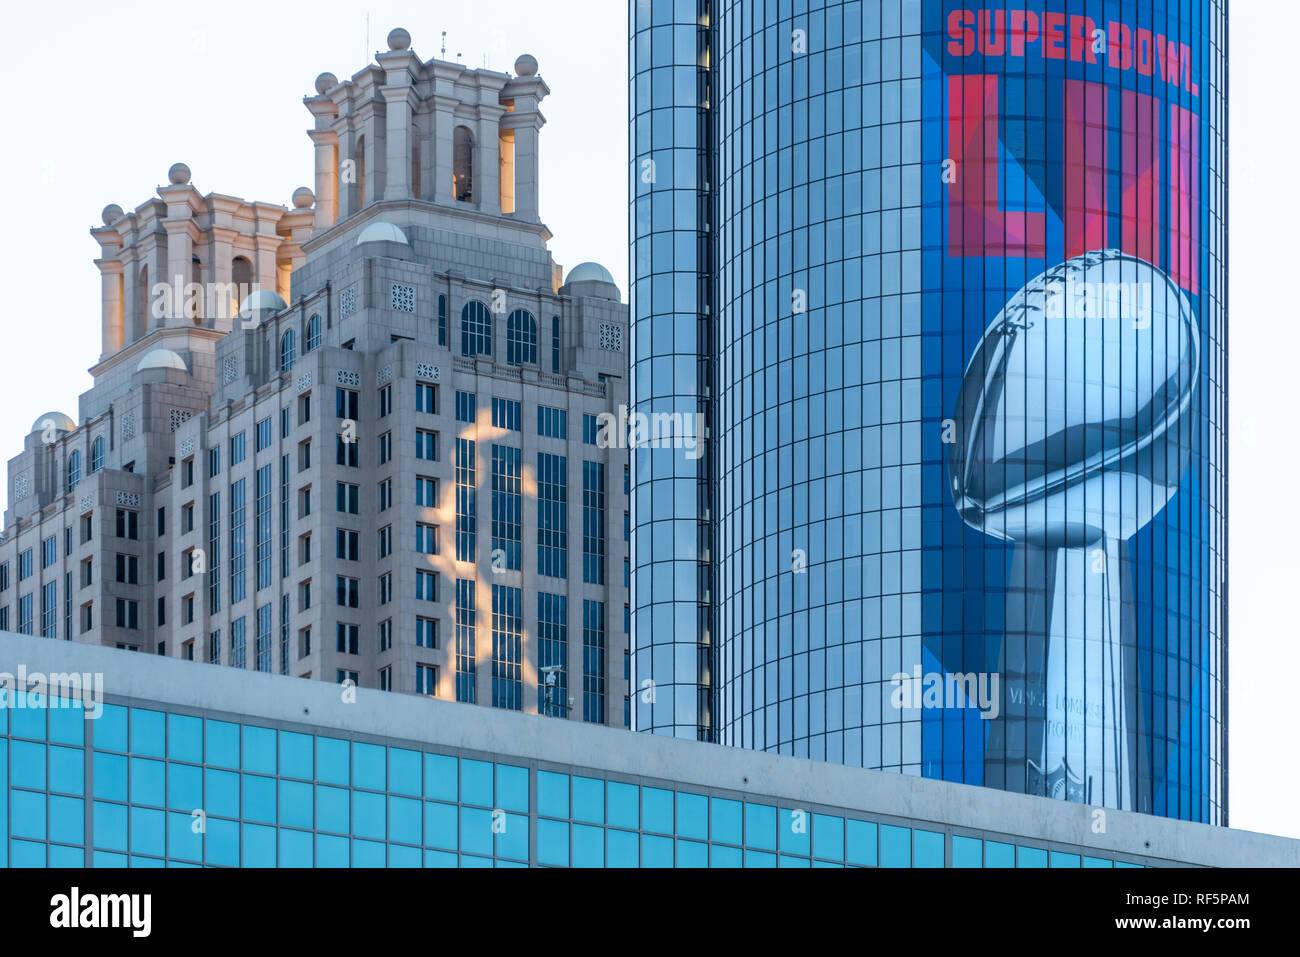 Super Bowl LIII graphics adorn the iconic Weston Peachtree Plaza tower in downtown Atlanta, Georgia ahead of the 2019 Super Bowl. (USA) - Stock Image